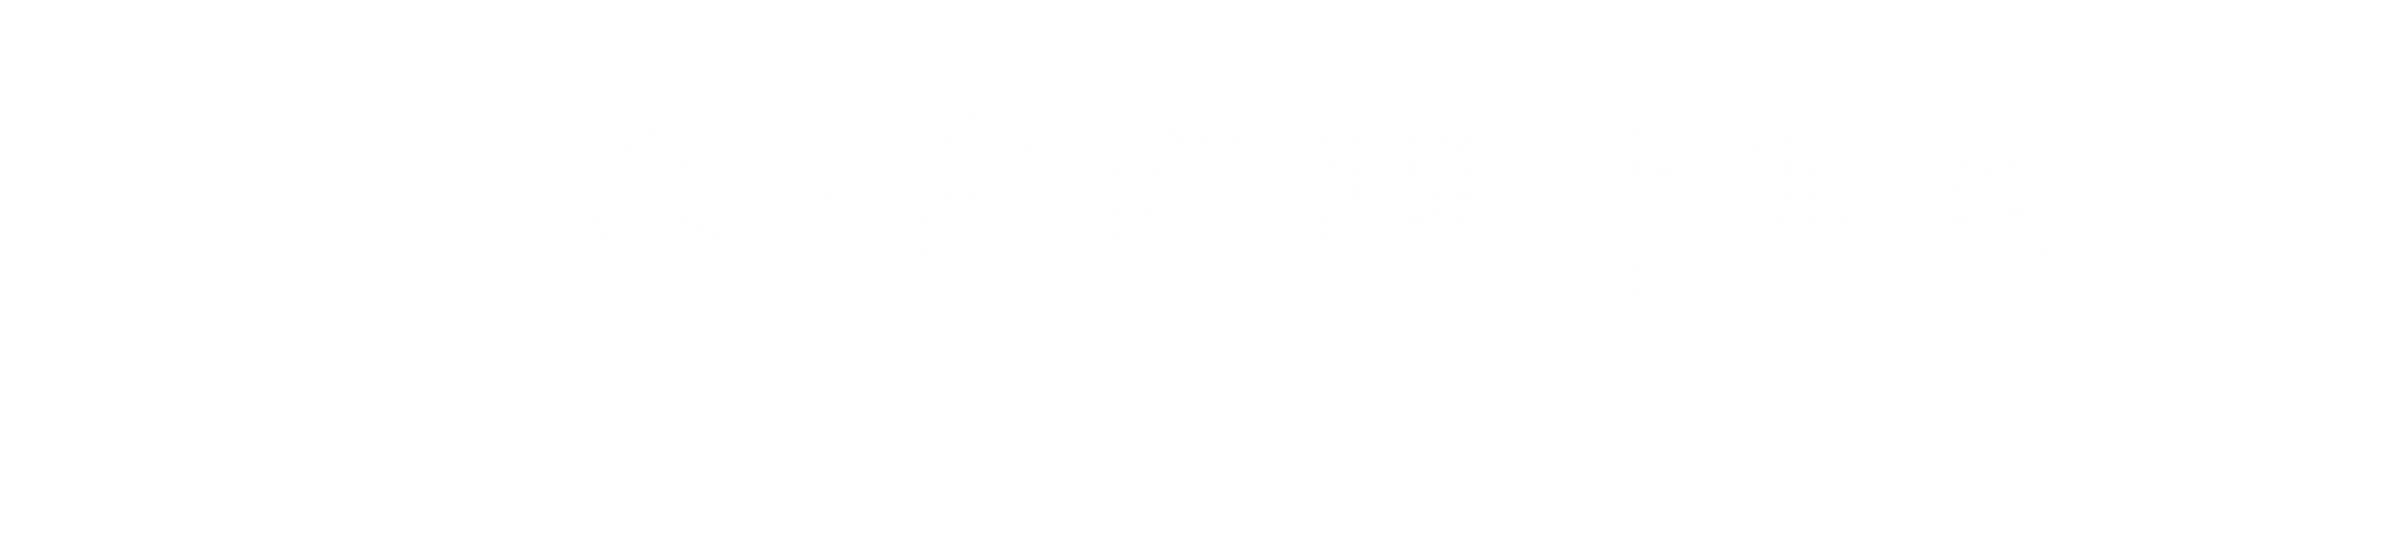 Tritium Technical Solutions